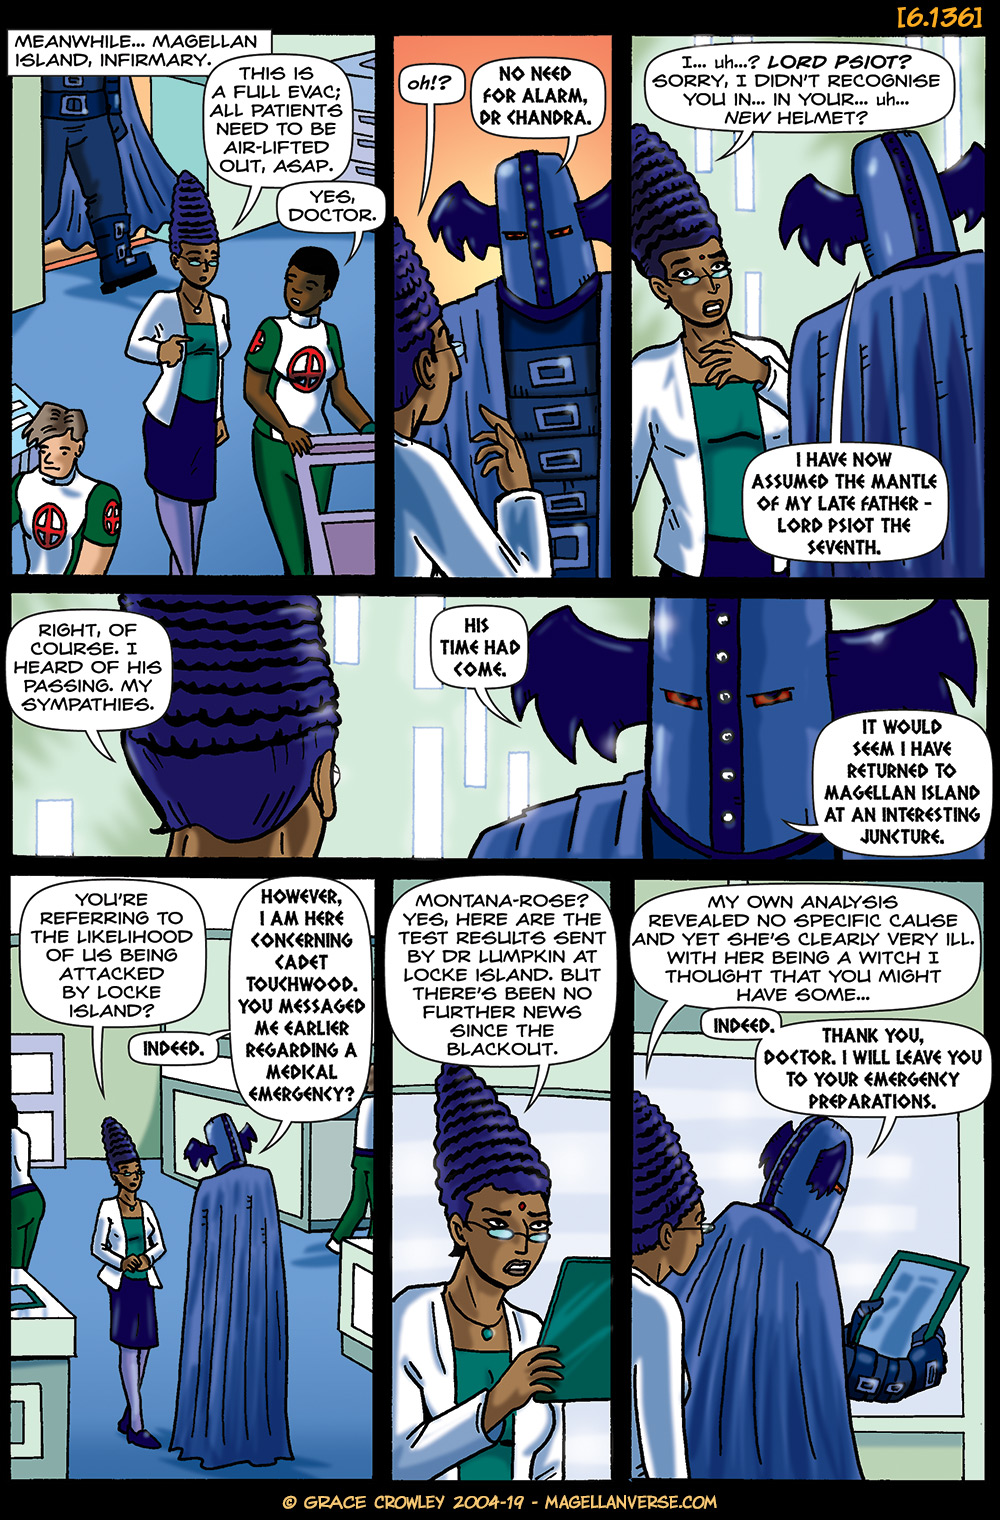 Page 6.136